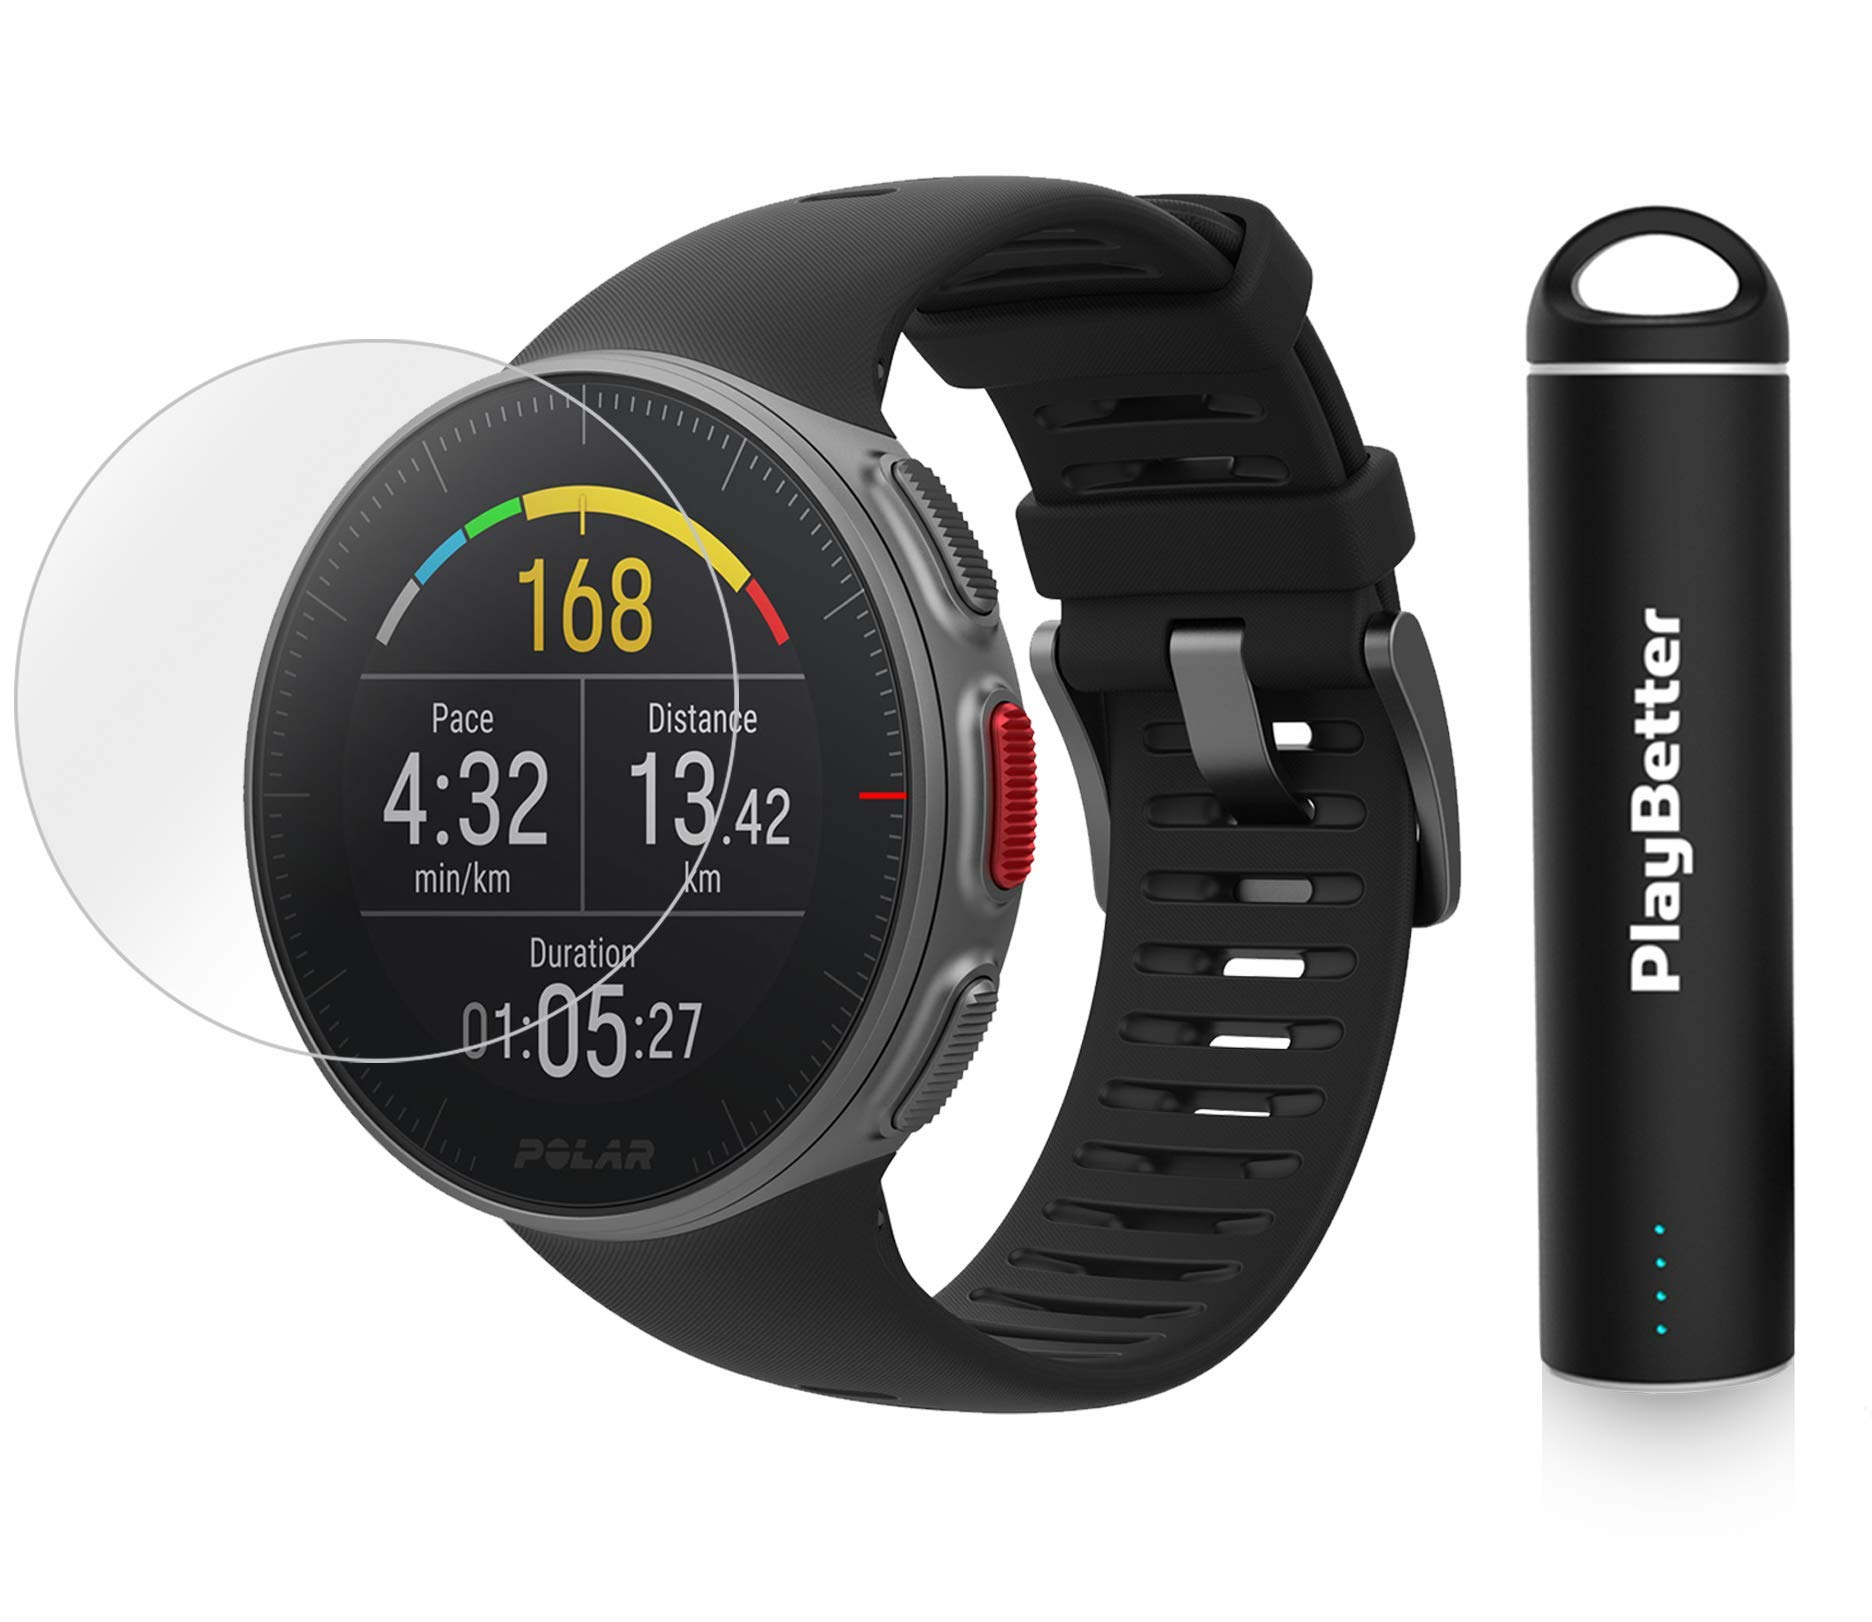 PlayBetter Polar Vantage V Pro Multisport Watch (Black) Power Bundle Portable Charger & Screen Protectors | GPS & Barometer | Heart Rate by PlayBetter (Image #1)